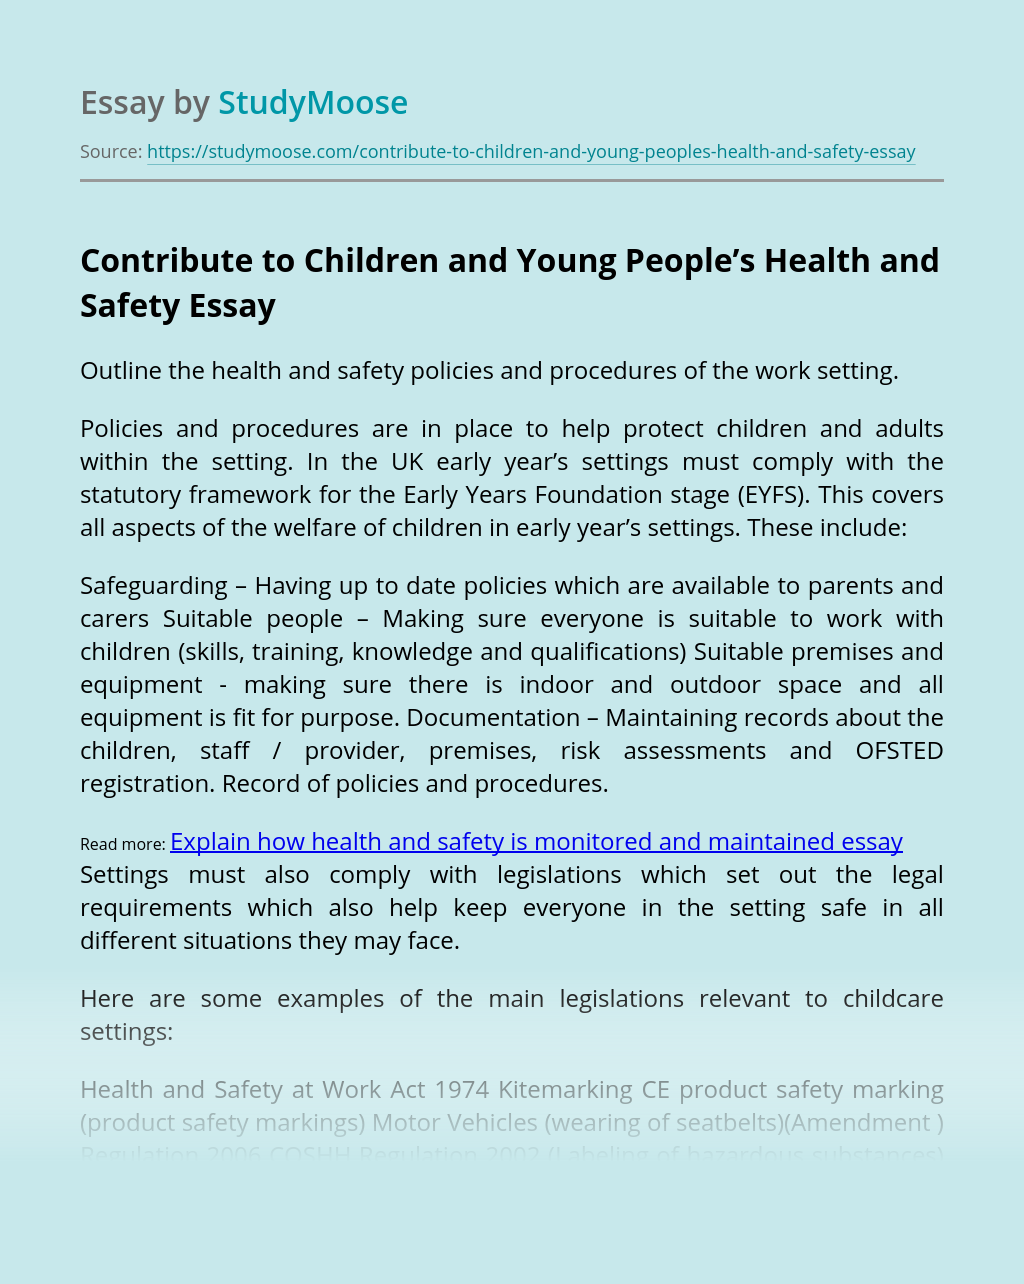 Contribute to Children and Young People's Health and Safety